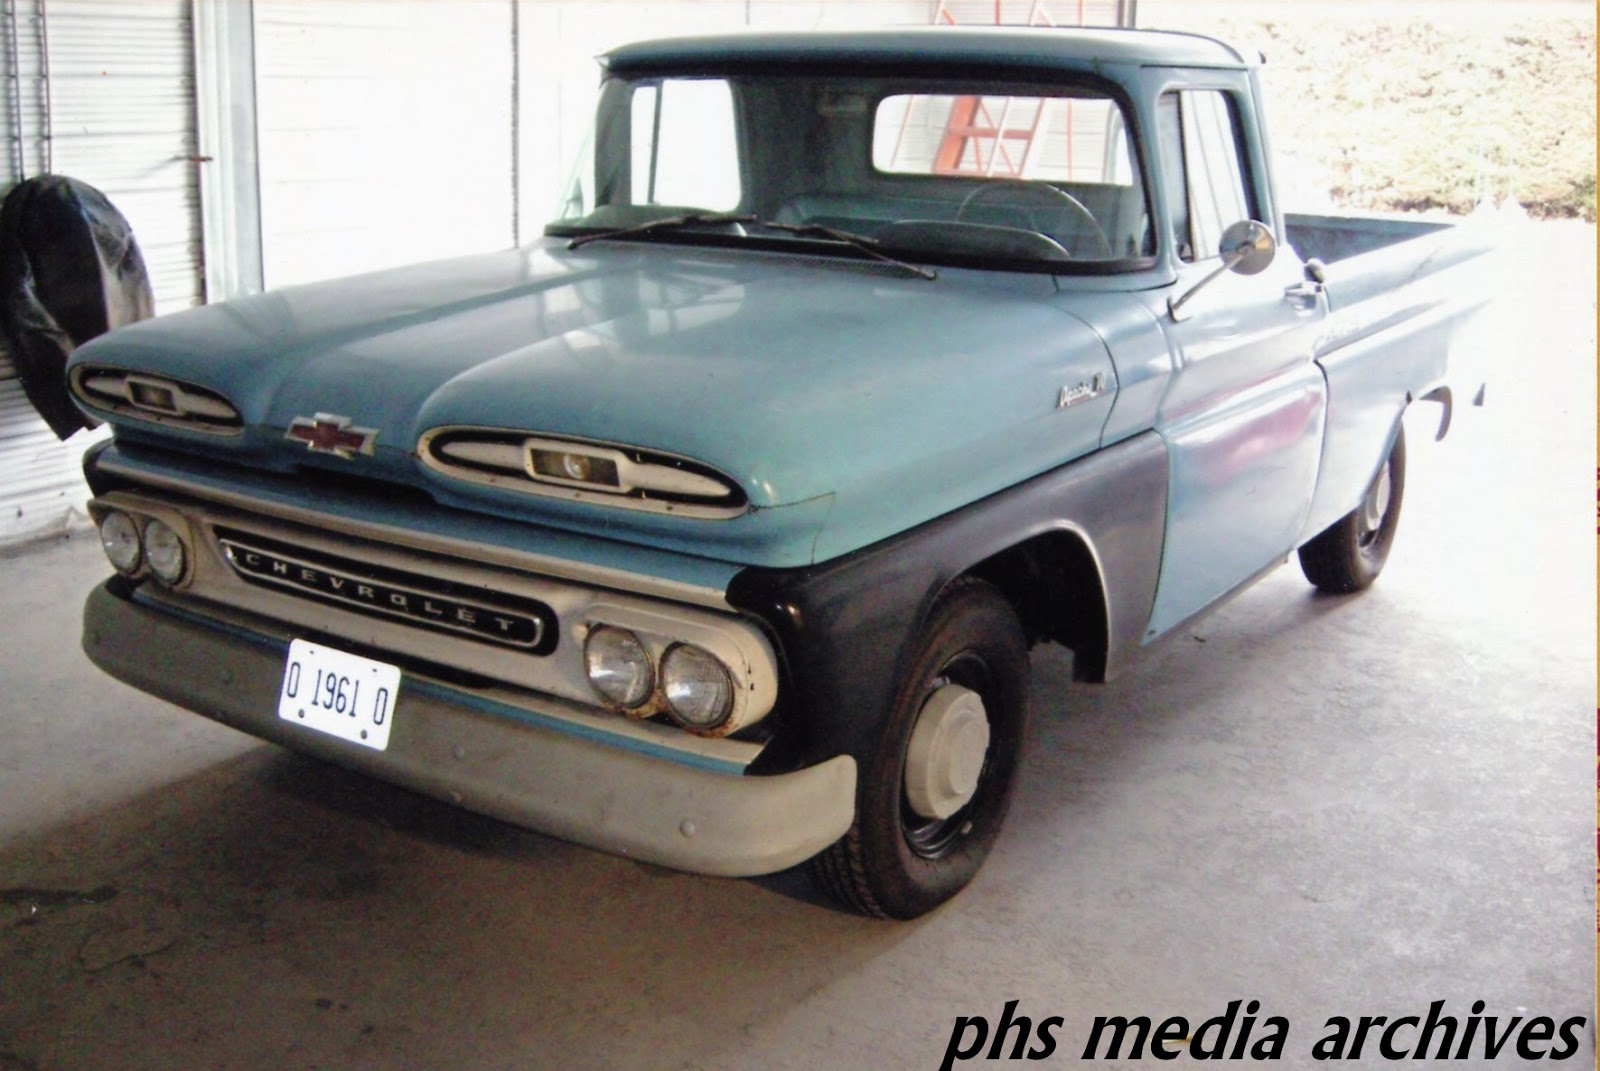 1961 Chevrolet Apache Resto Part A Initial Exam And Tear Down 1960 Studebaker Lark Wiring Diagram